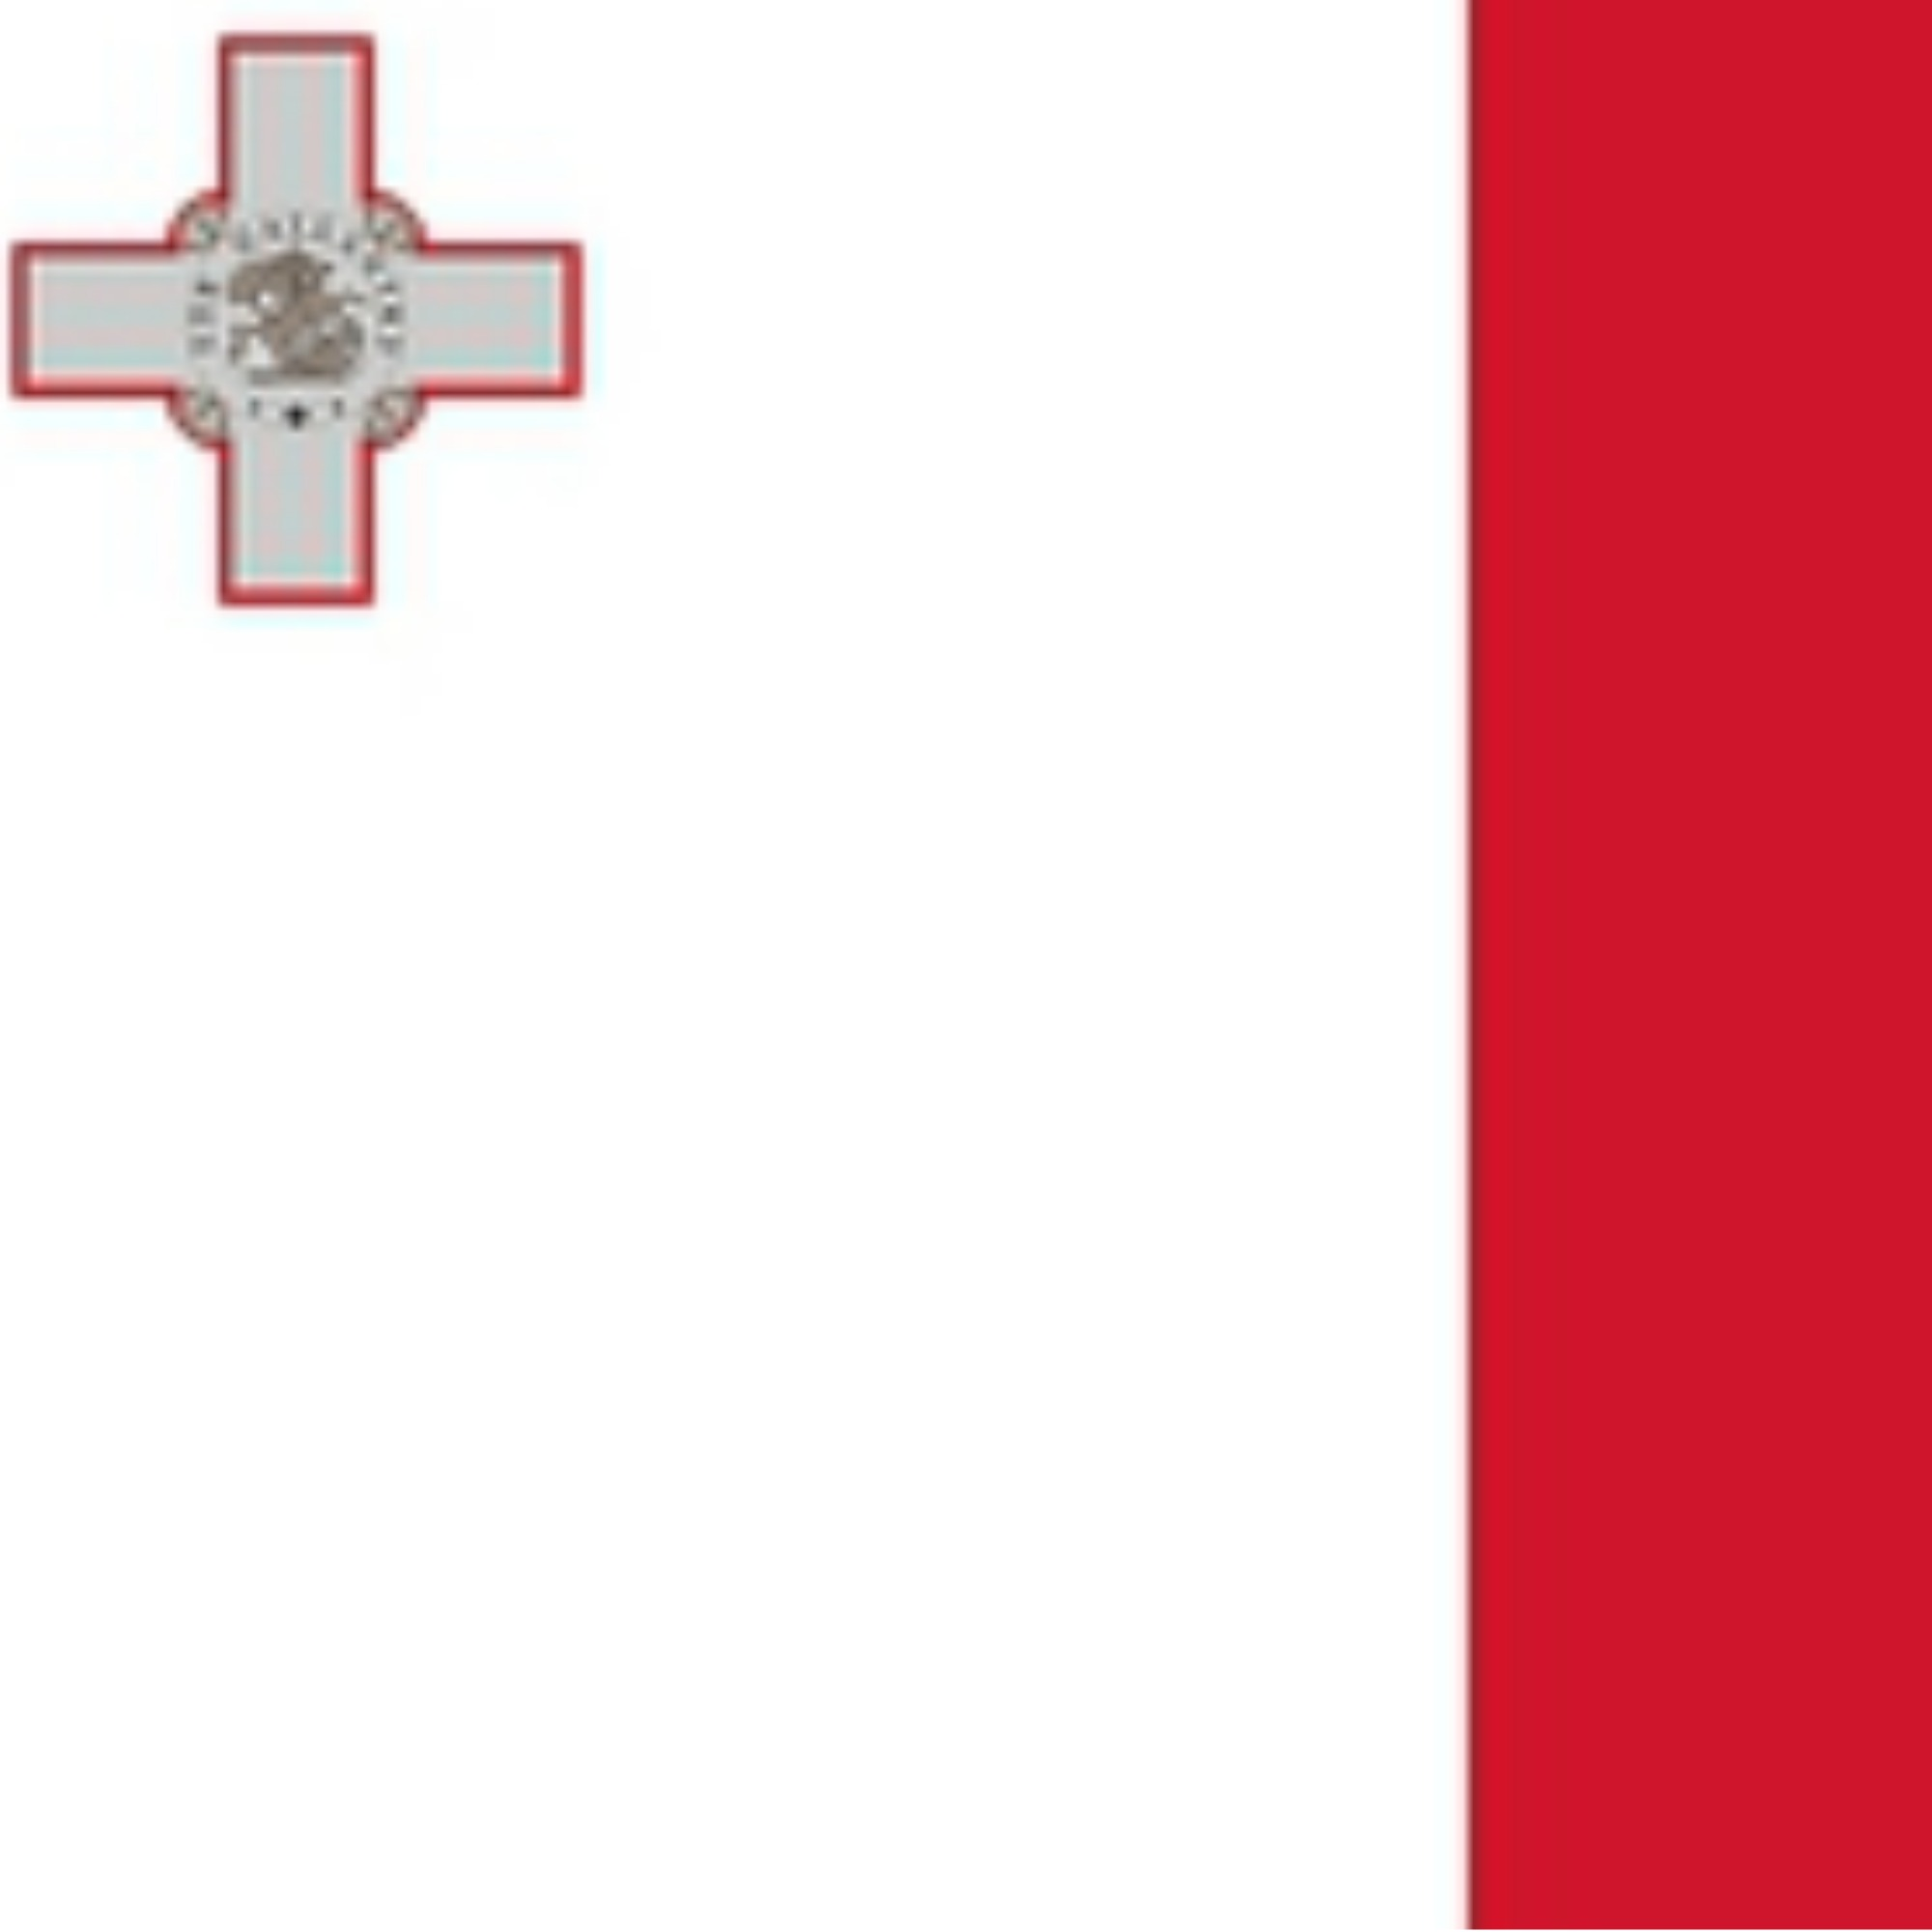 Honorary Consulate of Malta (Valencia)